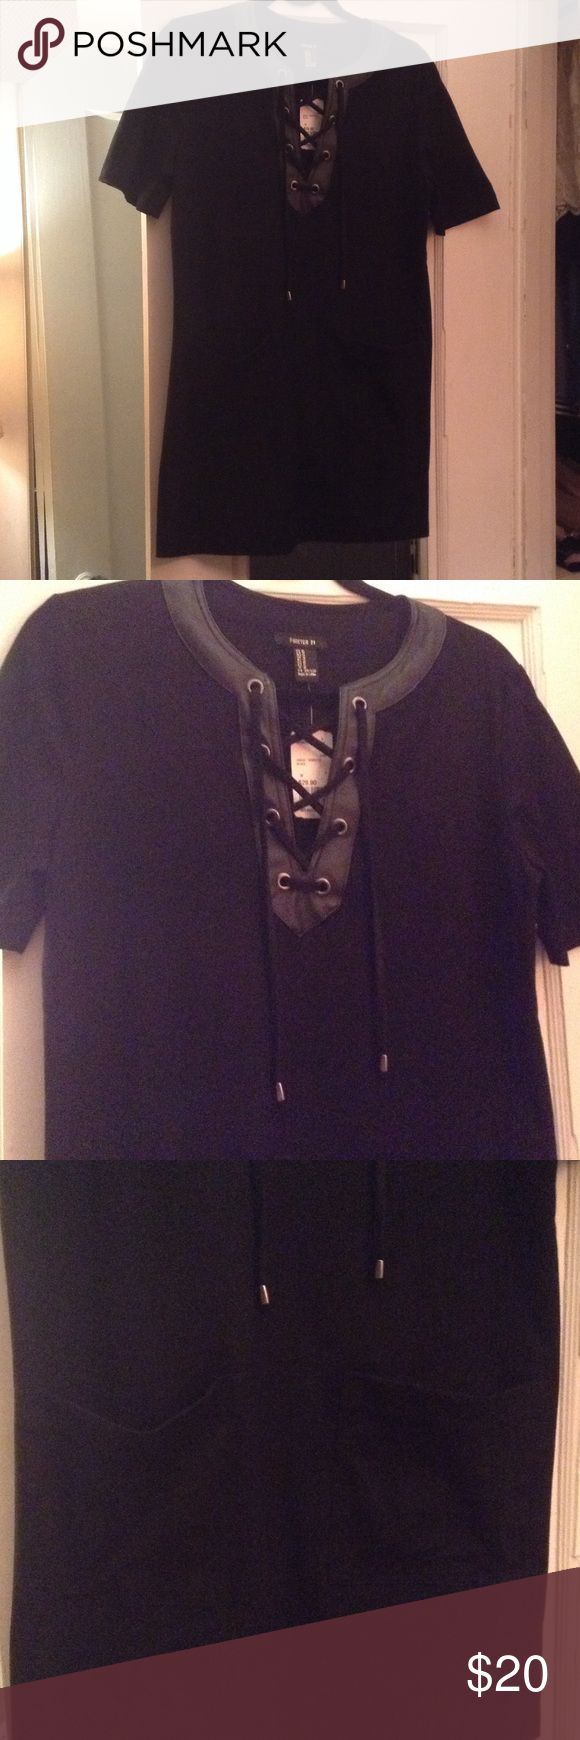 Forever 21 Faux Suede Dress Forever 21 Faux Suede Black Dress with Front Pockets & Faux Leather Trim Collar with Lace Tie.  Short Sleeves. Size Medium. Approx 32 inches length. 91% Polyester 9% Spandex. New with tags Forever 21 Dresses